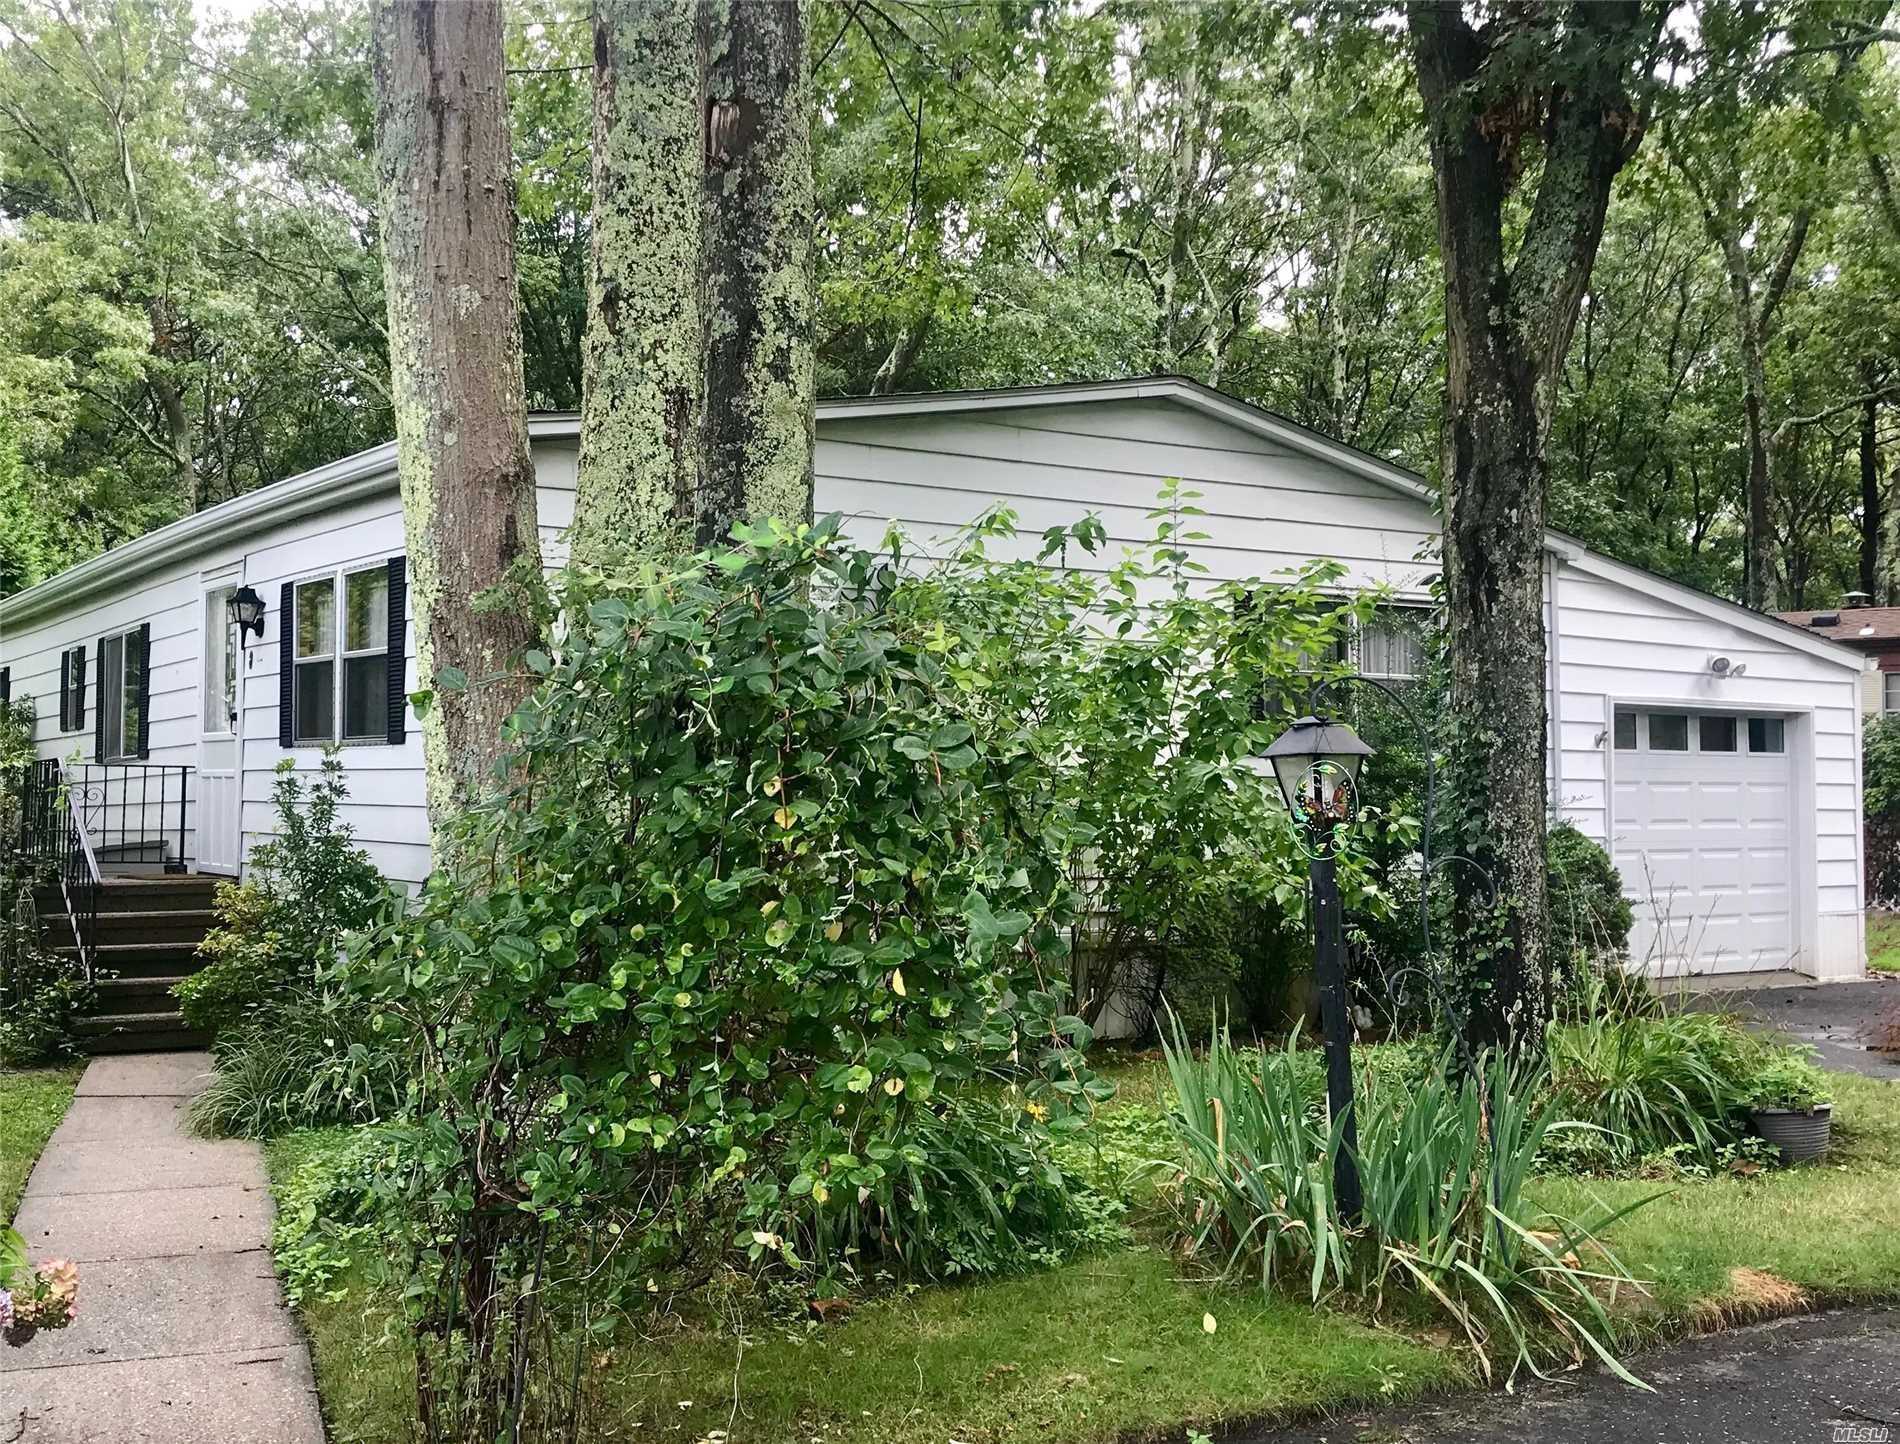 55 And Over Community. Cash Only. Beautifully Maintained Double Wide. Large Kitchen, Formal Dining Room, Family Room, Two Bedrooms, Two Full Baths. Owners Put In A Beautiful Art Studio, With Air-Conditioning And Heat. Can Be Changed To A Sun Room Or Garage. New Roof. New Skylights. Tons Of Privacy, On The Preserve. Monthly Land Rent $979.82 Includes Taxes, Water, Trash, Snow Removal, Cesspool Maintenance And Use Of Clubhouse. Access To Southampton Town Beaches With Residence Permit.